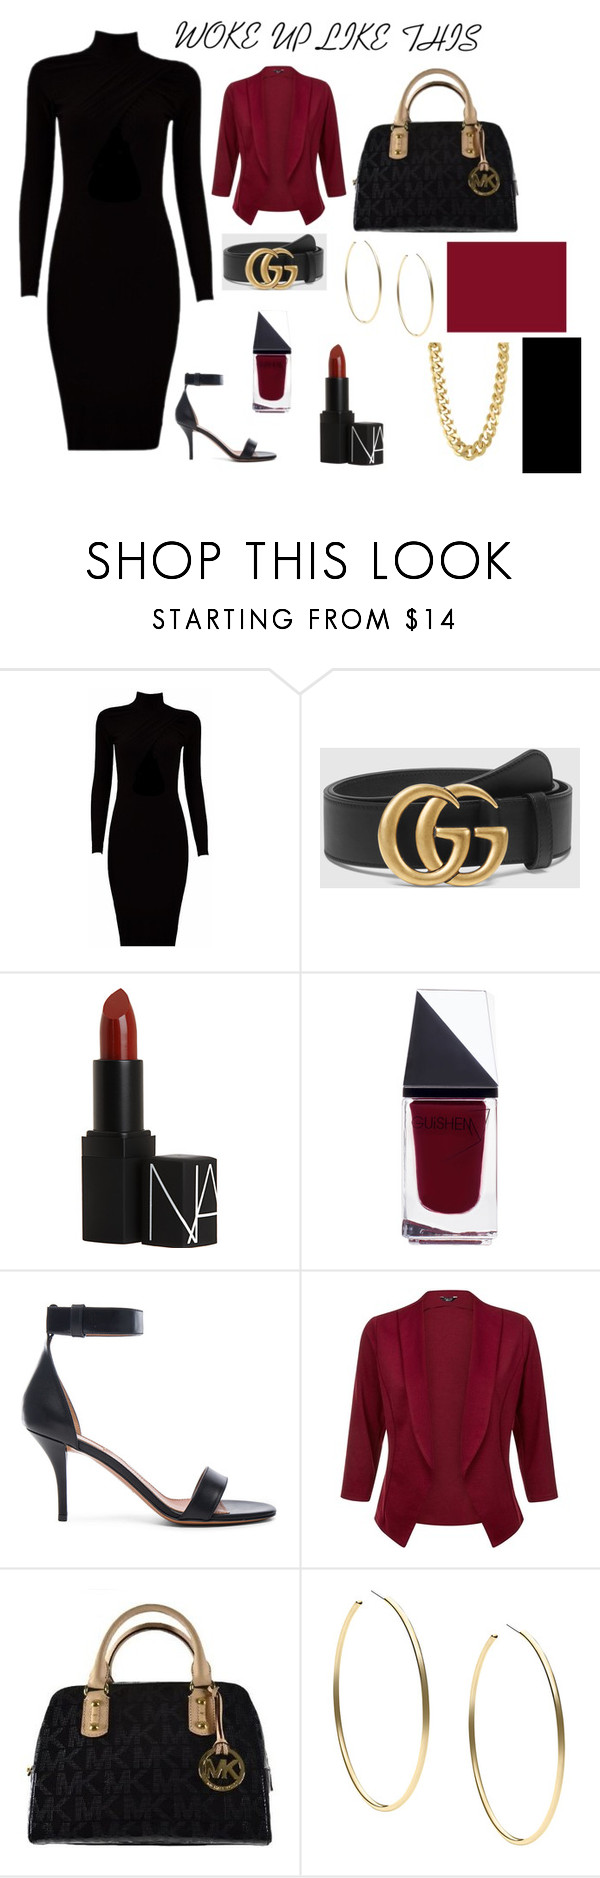 """simple @ classic"" by hhhhiiiiiiiiiii ❤ liked on Polyvore featuring Gucci, NARS Cosmetics, GUiSHEM, Givenchy, Michael Kors and CC SKYE"